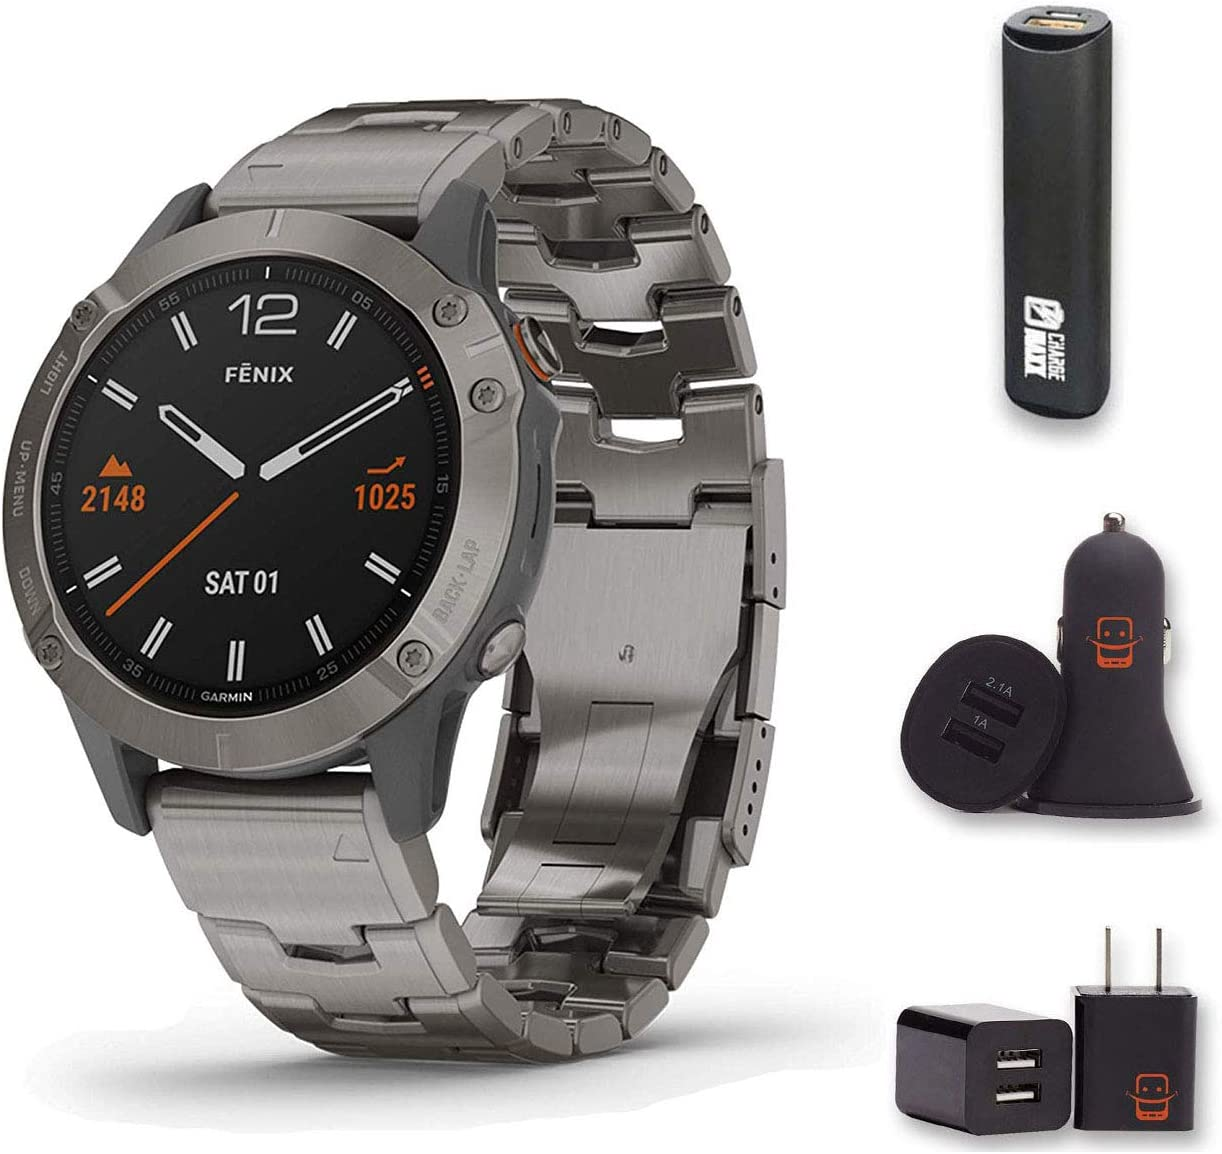 Garmin Fenix 6X Pro Solar - (Dary Gray w/Black Band) Bundle with PowerBank + USB Car Charger + USB Wall Charger (4 Items)